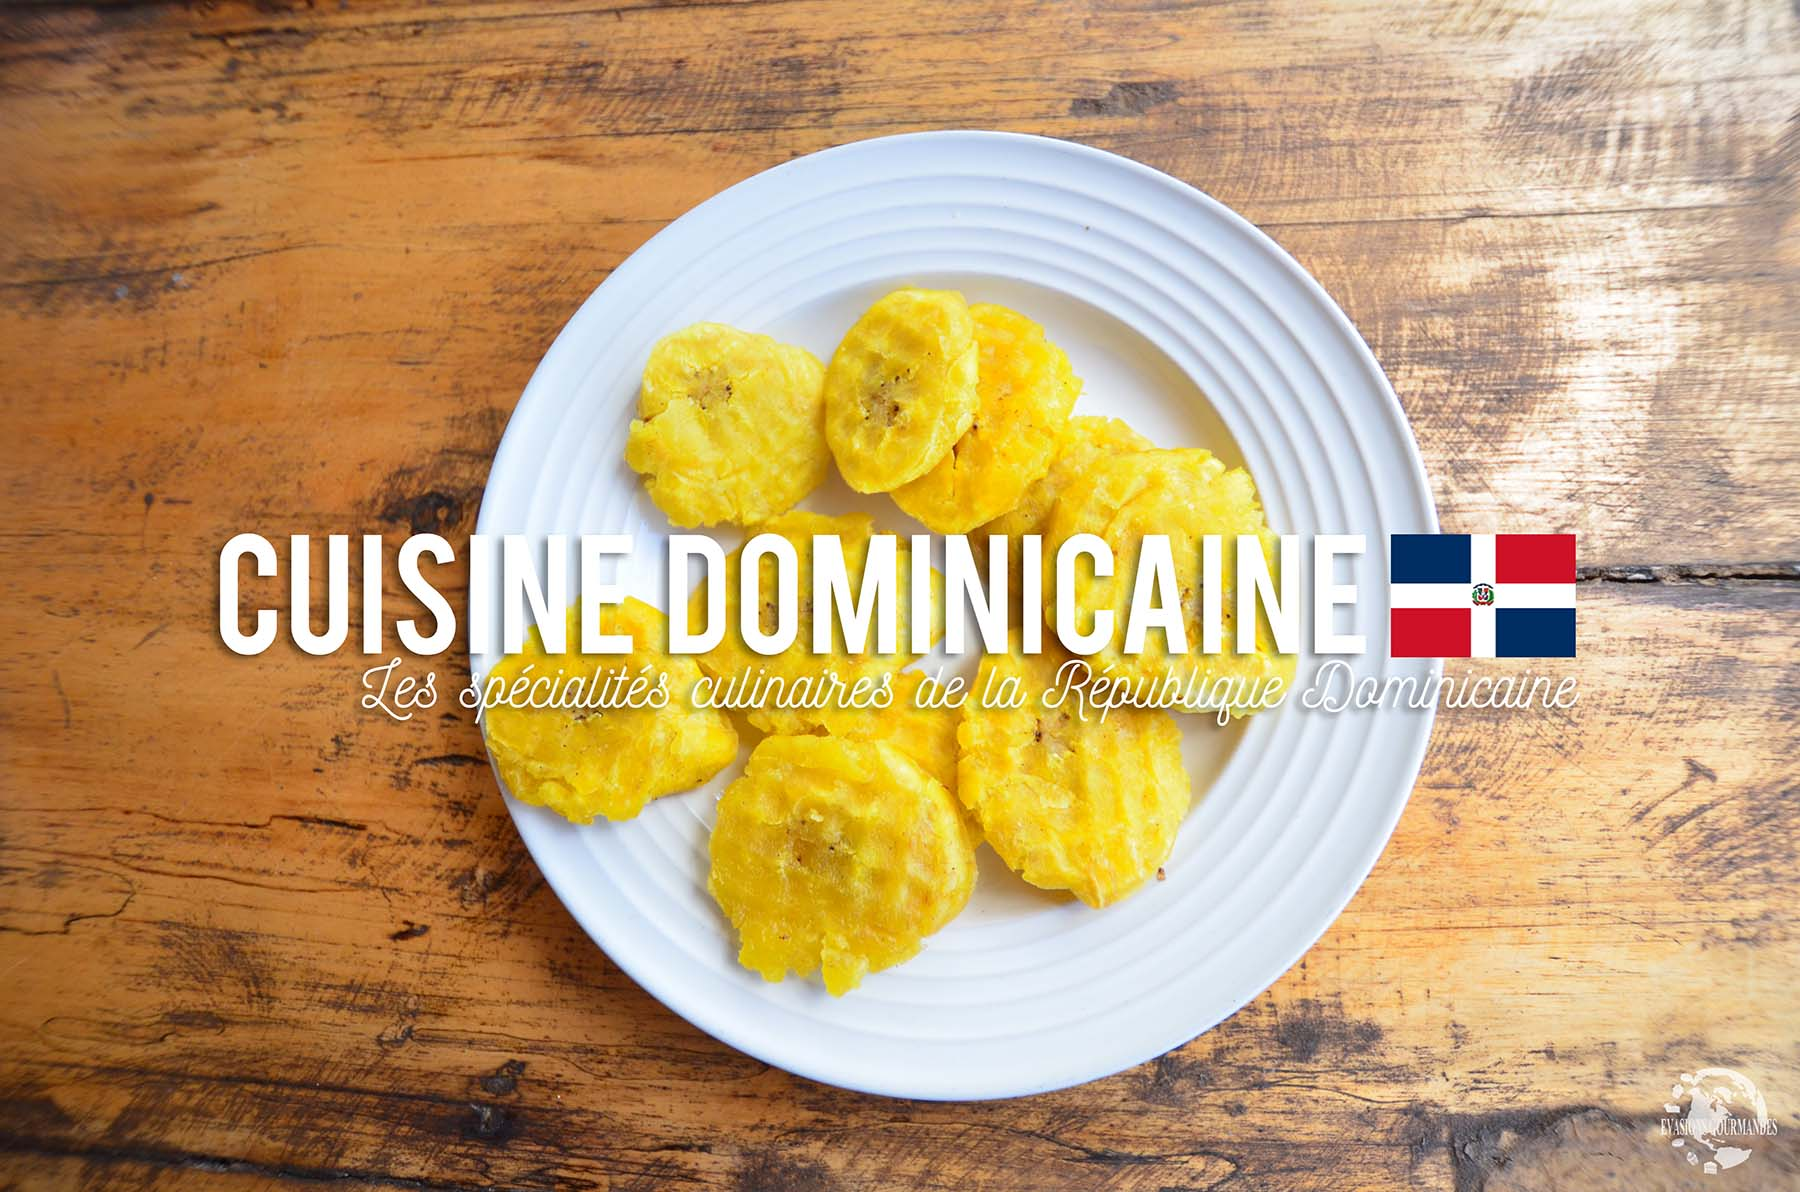 gastronomie de la republique dominicaine